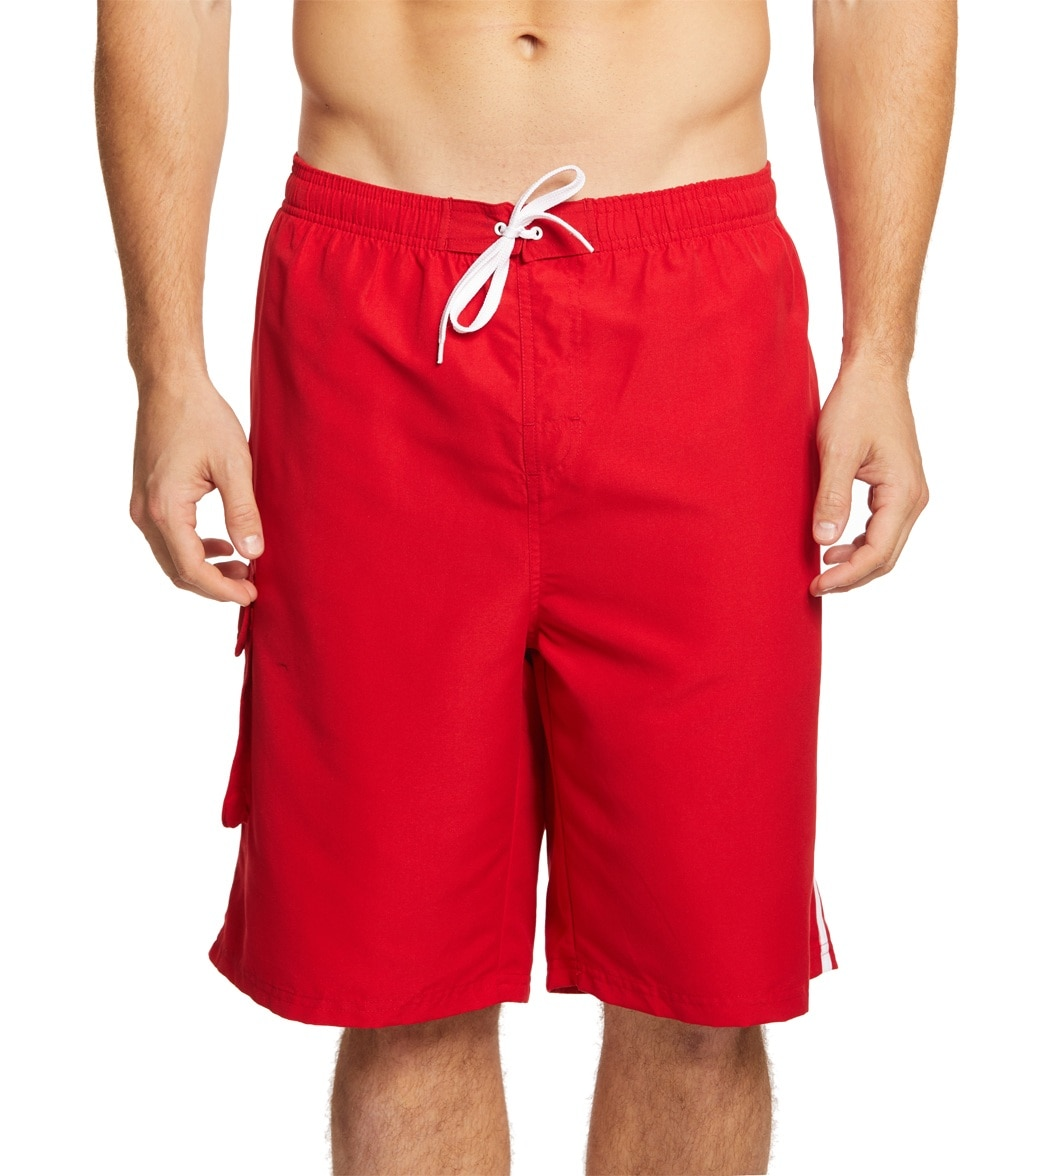 823943b7eed2 Sporti Guard Men s Cargo Swim Trunk at SwimOutlet.com